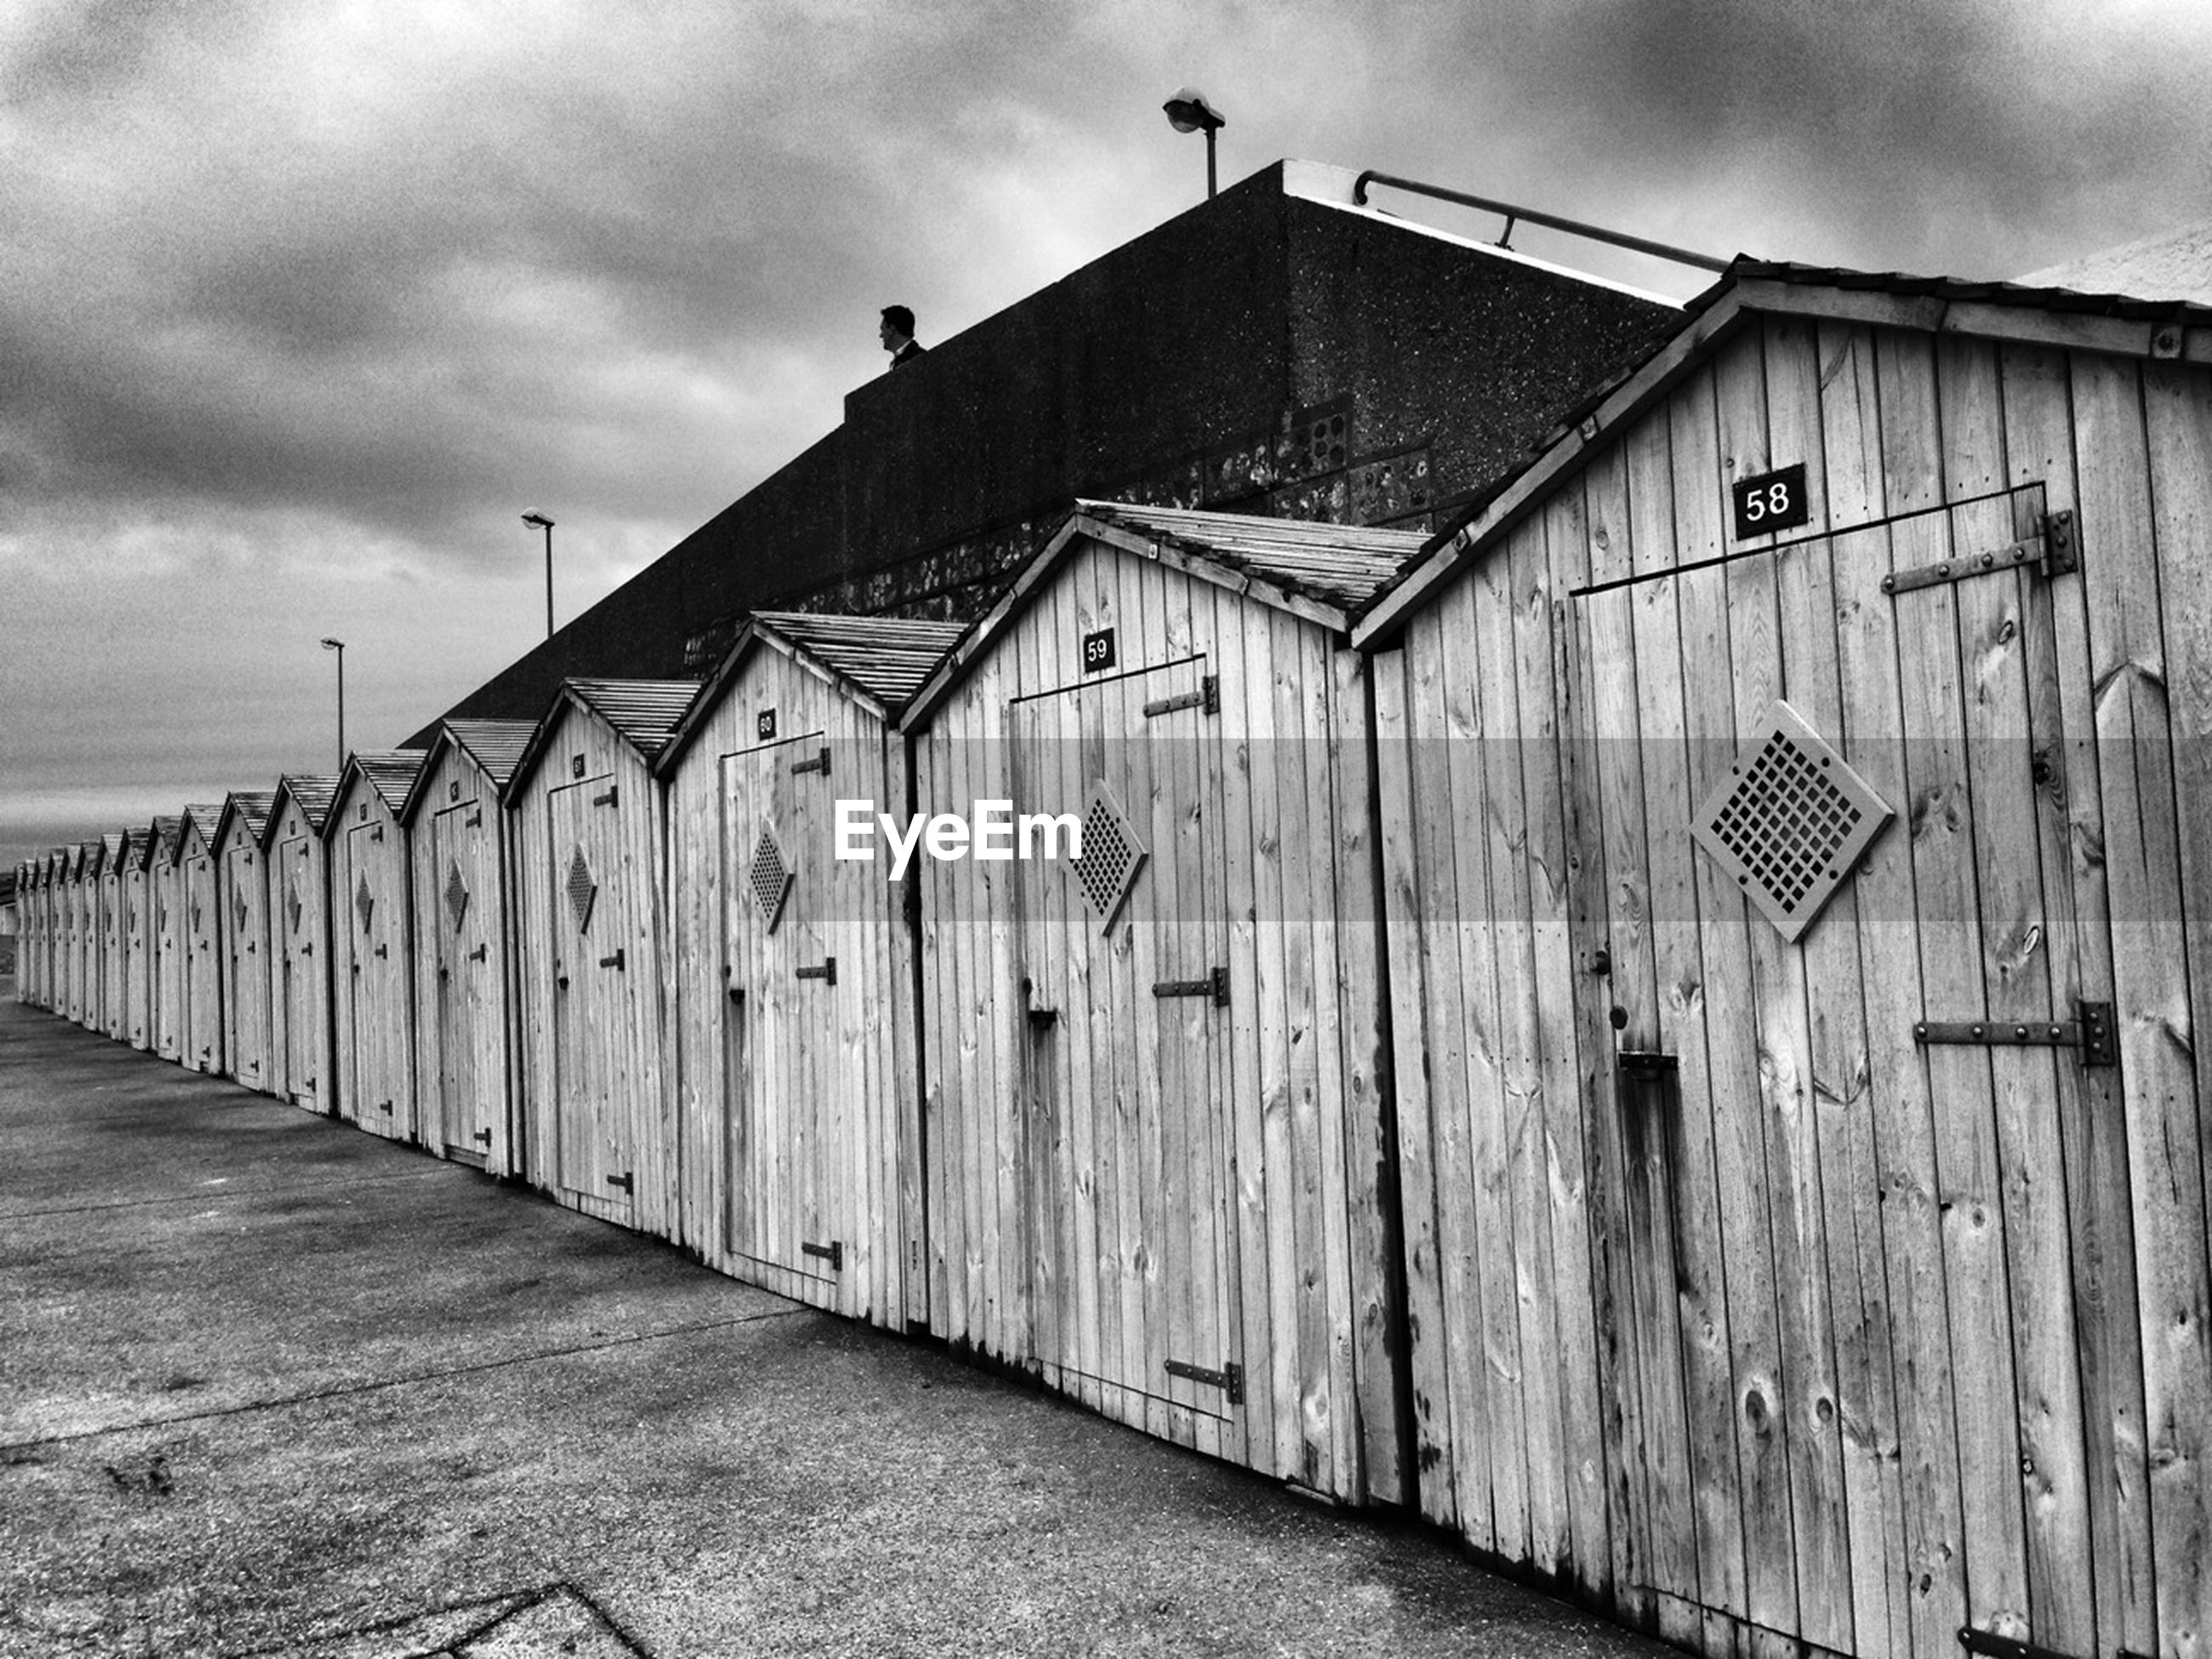 architecture, built structure, sky, building exterior, cloud - sky, cloudy, cloud, bird, day, outdoors, overcast, house, no people, door, animal themes, low angle view, street, weather, wood - material, old